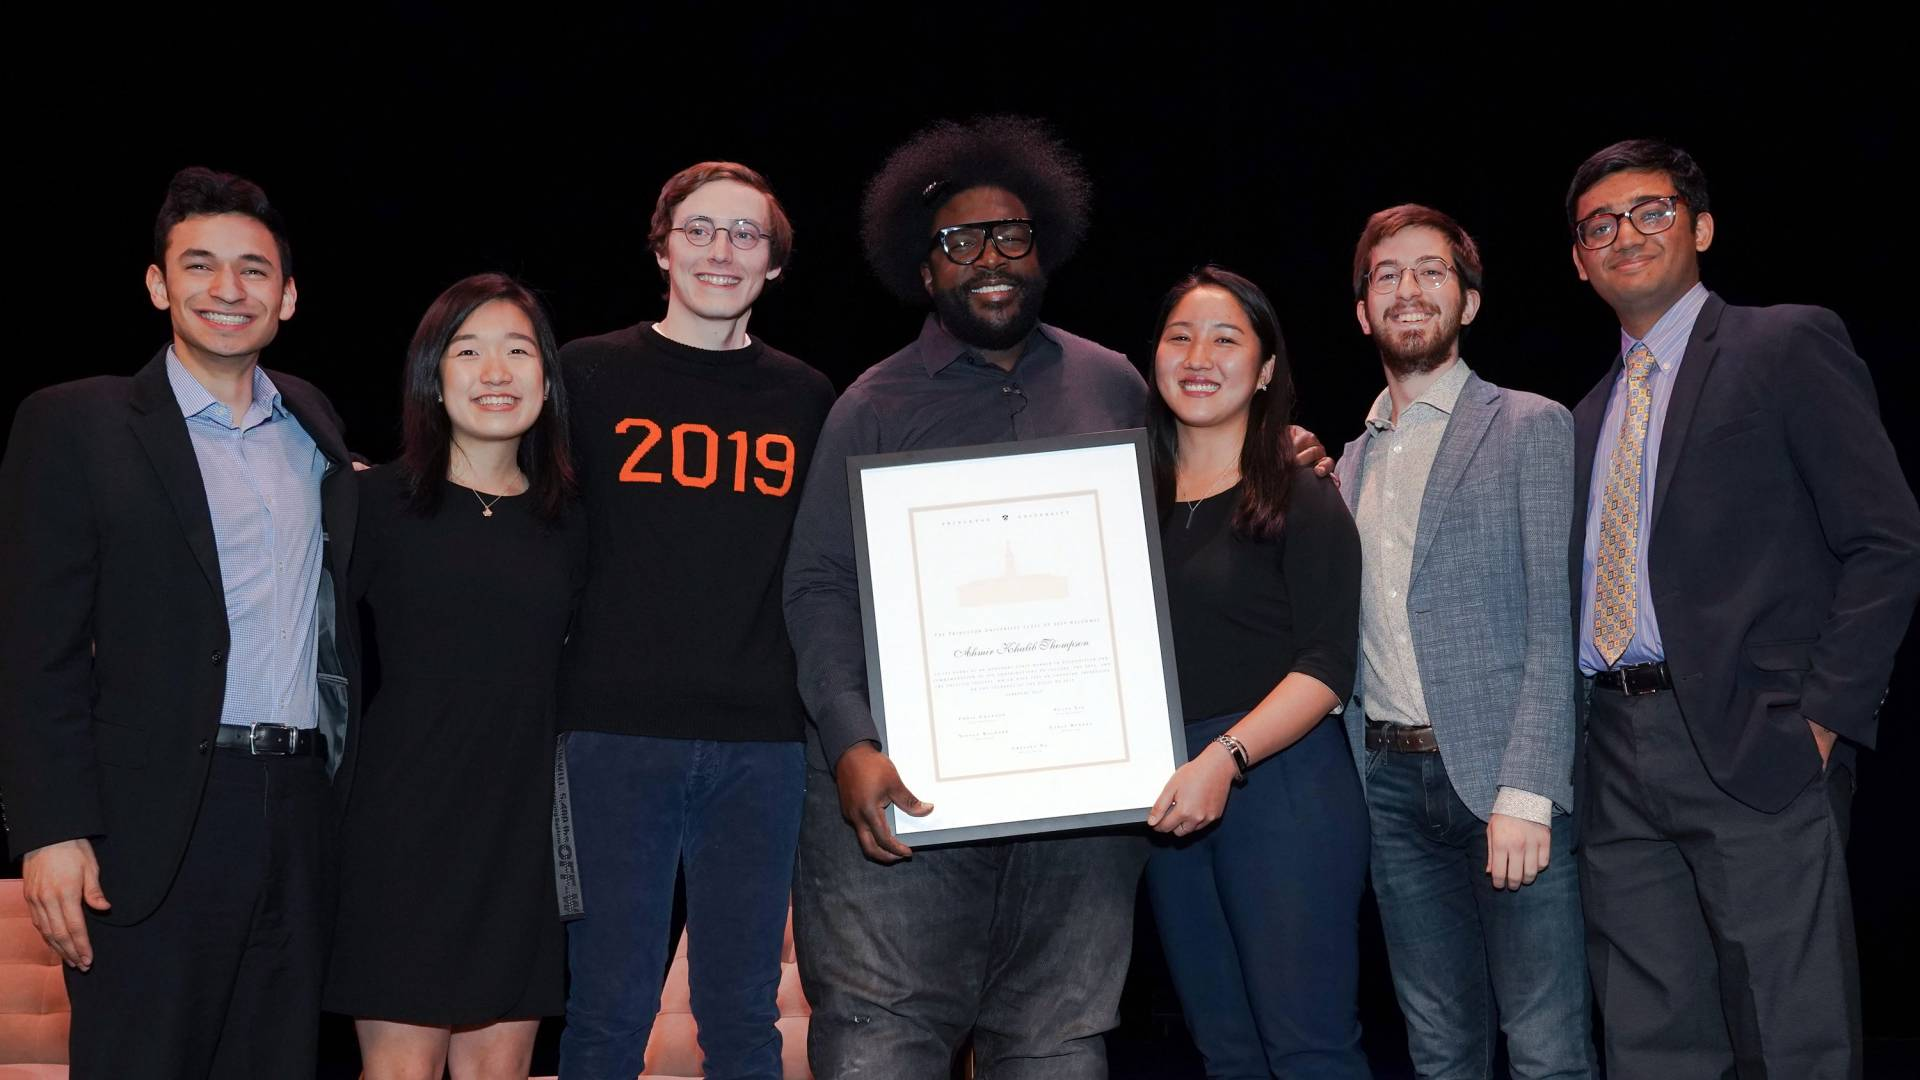 Questlove standing with Princeton seniors holding a certificate for honorary membership of the Class of 2019